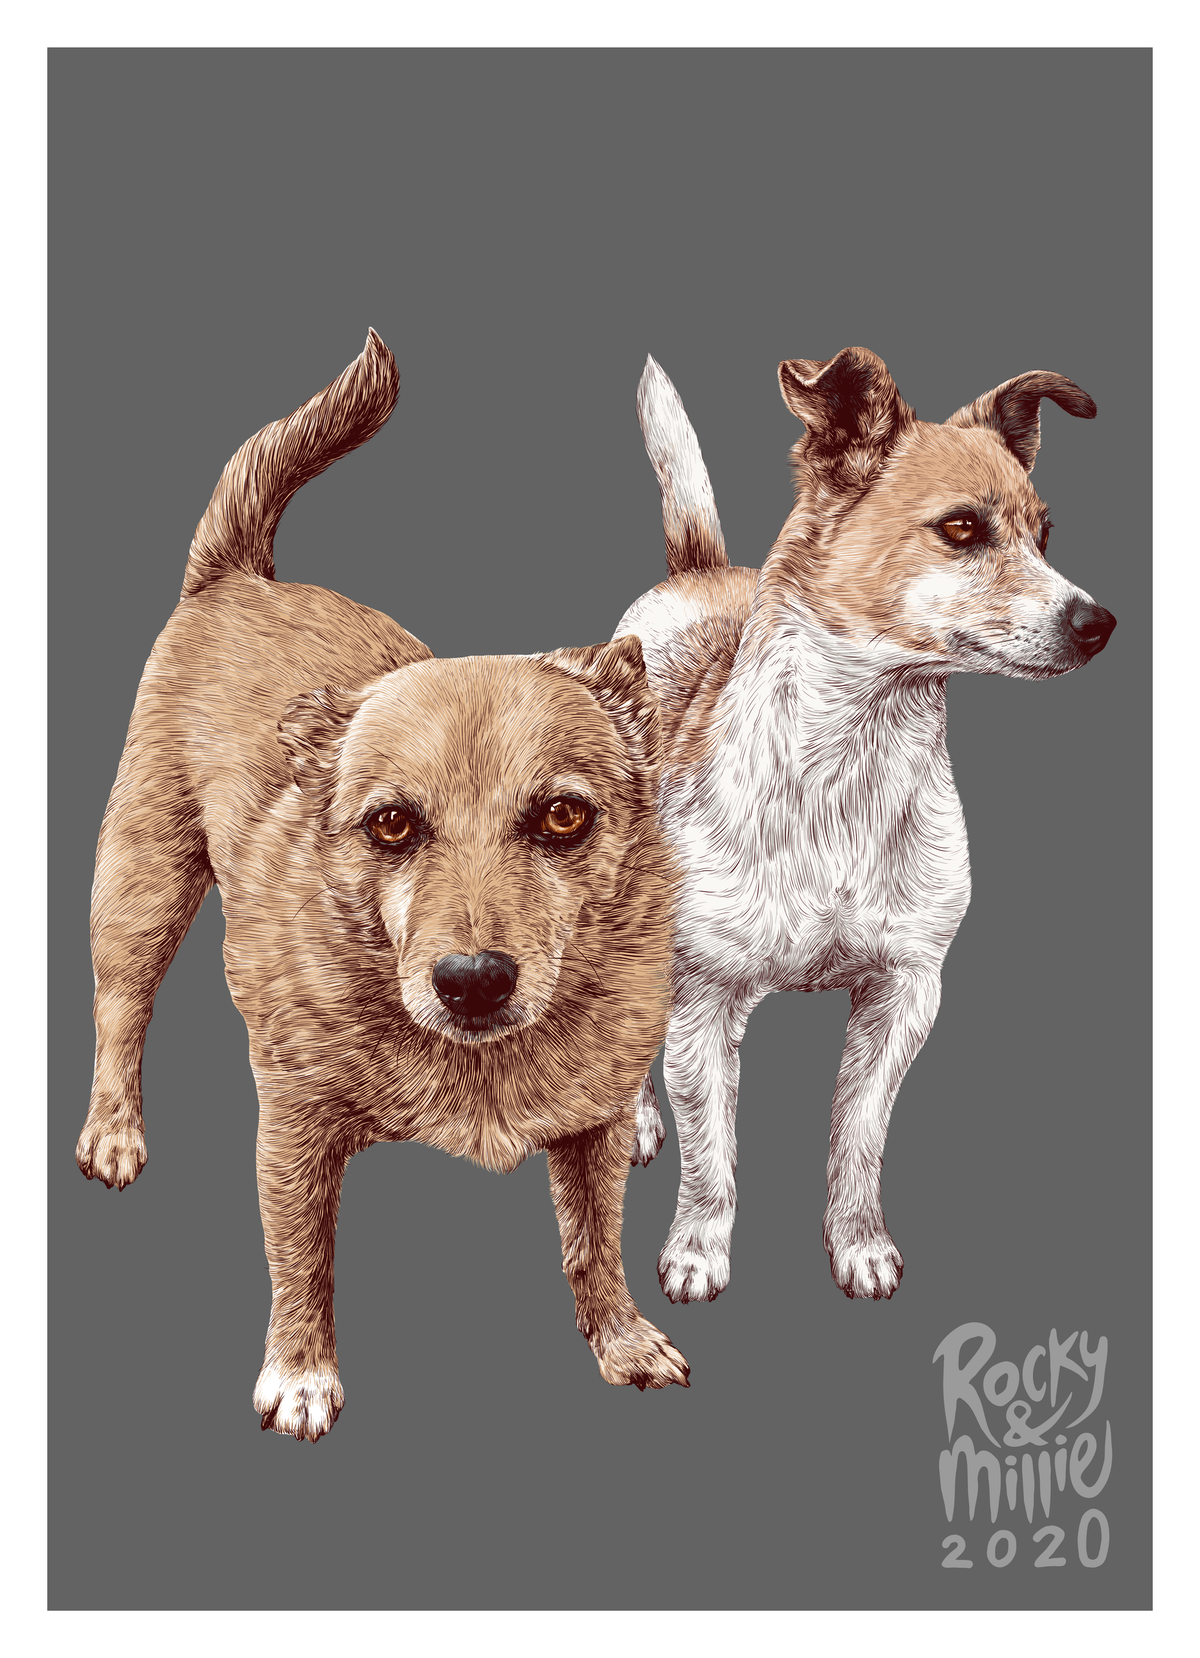 Illustration of 2 pet dogs as a gift for family